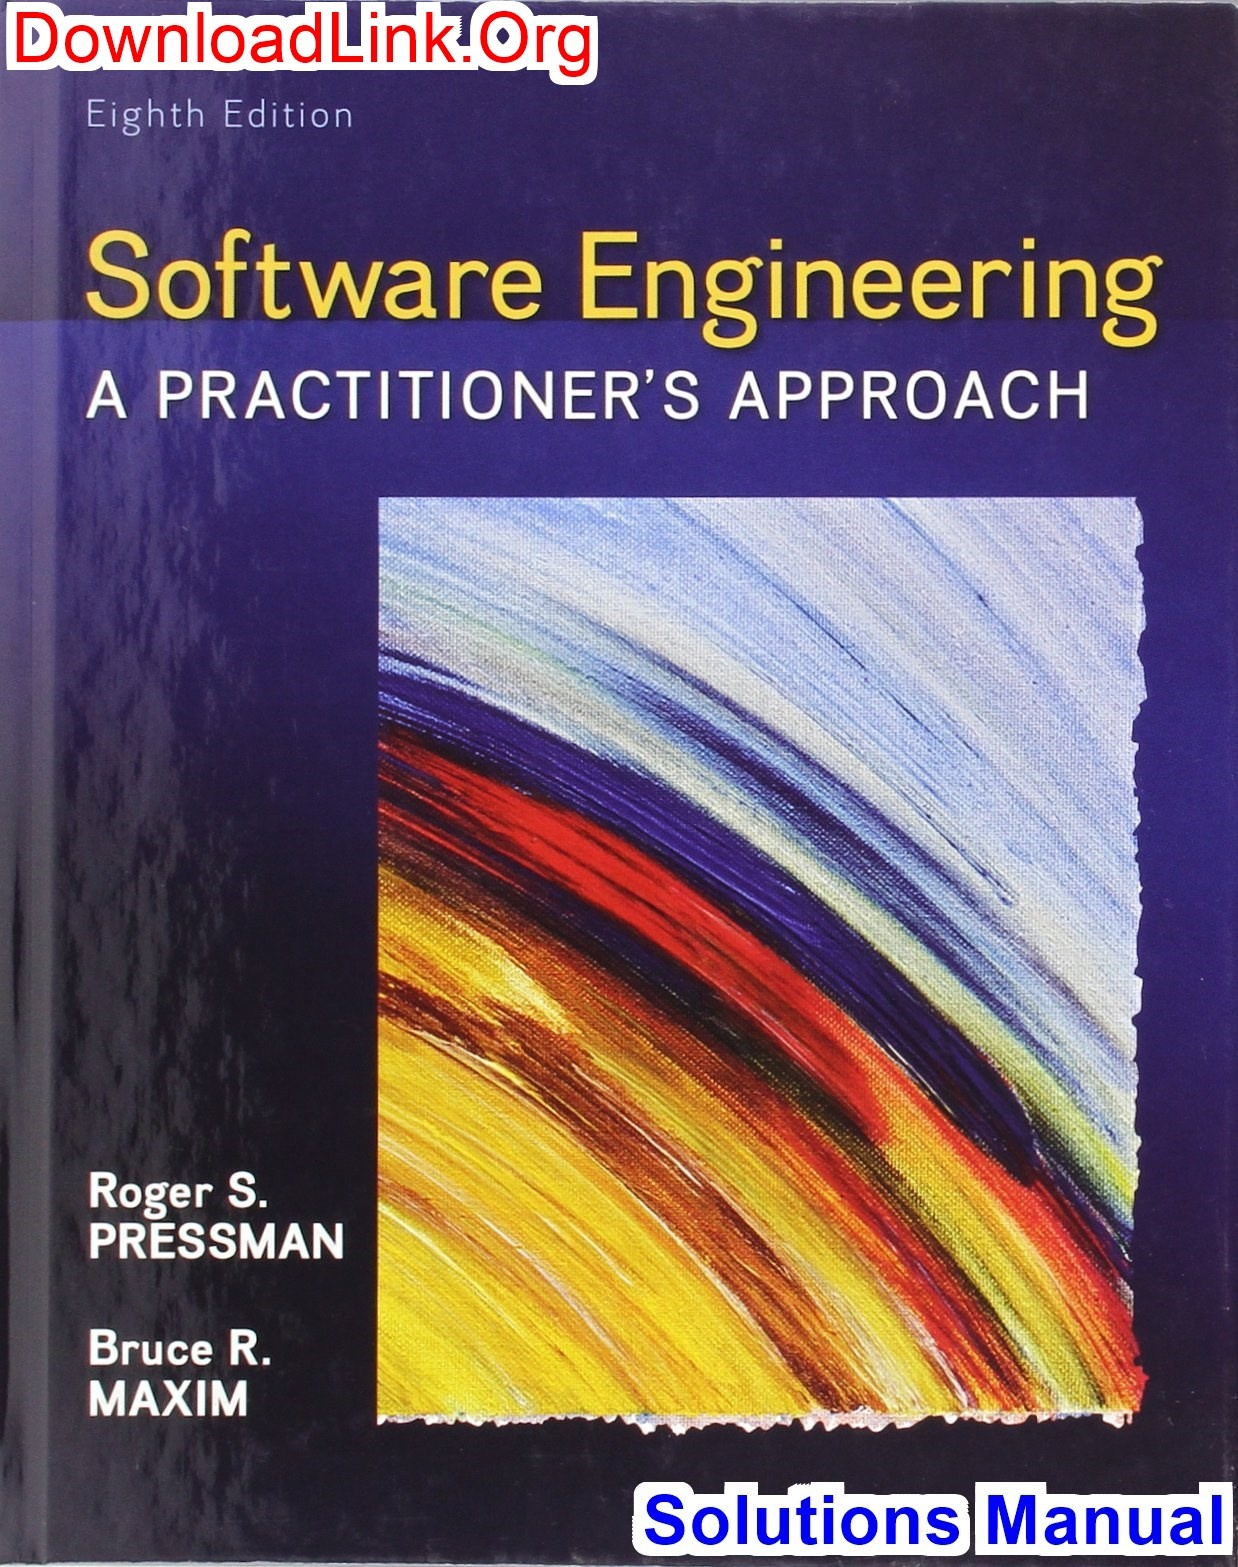 DownloadLink[dot]Org/p/solutions-manual -for-software-engineering-a-practitioners-approach-8th-edition-by-pressman/